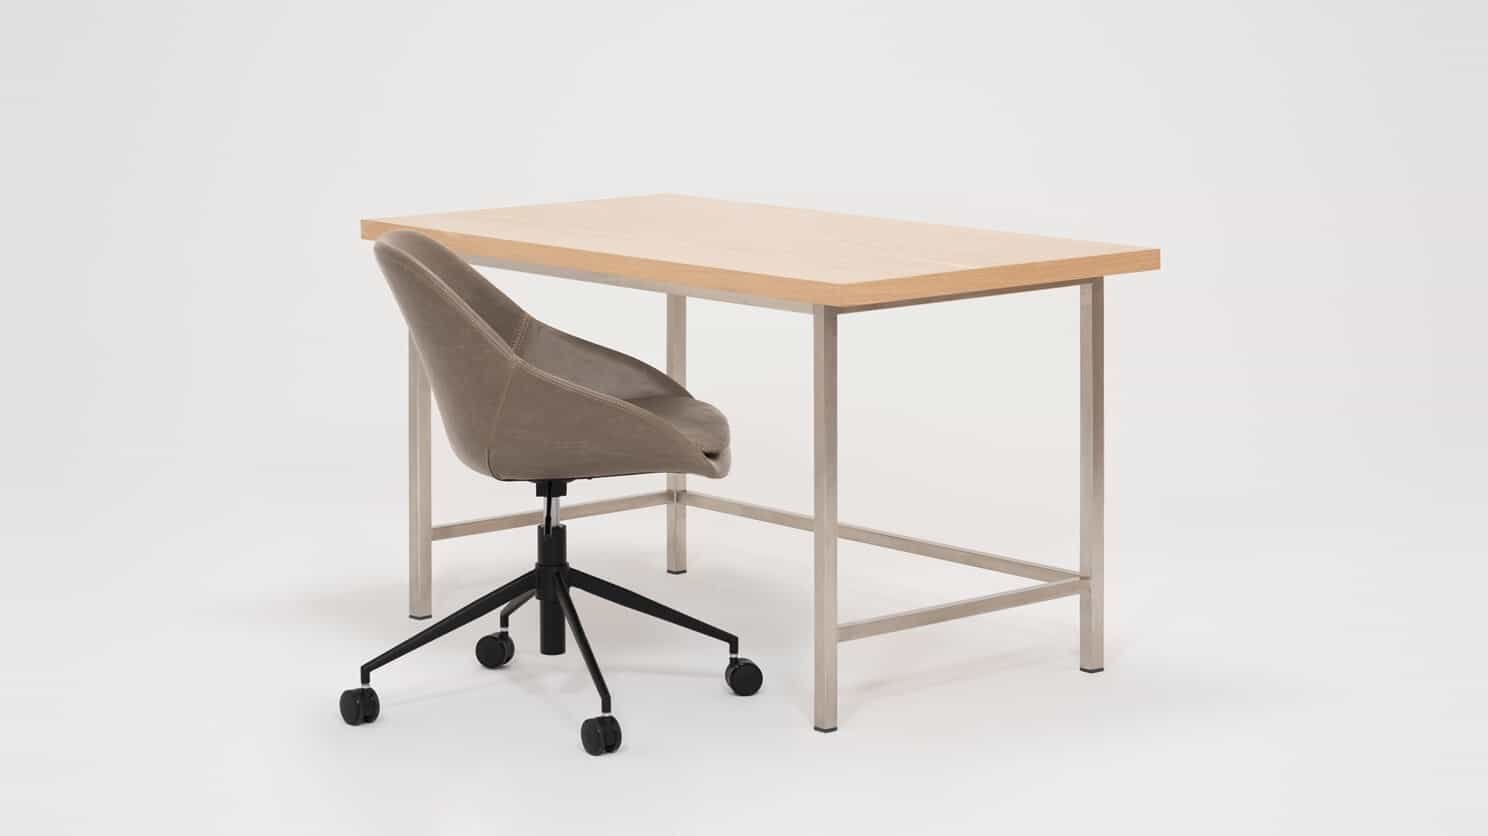 7060 307 opar 9 desks kendall desk oak stainless steel detail 02